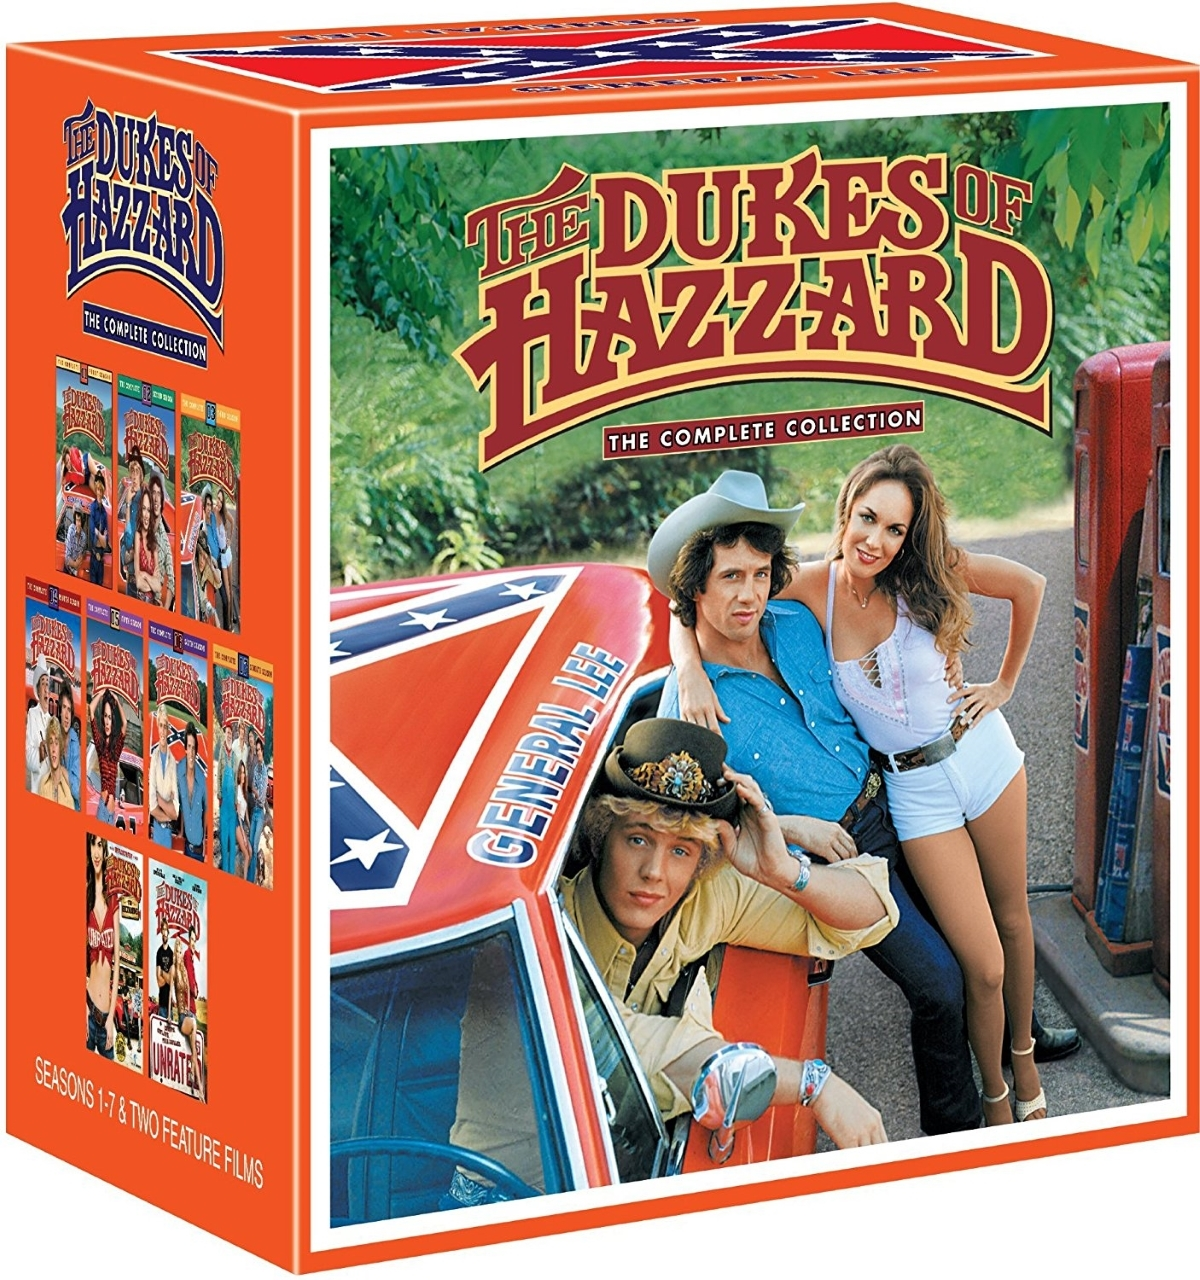 The Dukes of Hazzard The Complete Seasons 1-7 + 2 Movies (DVD 2006 39-Disc Set)